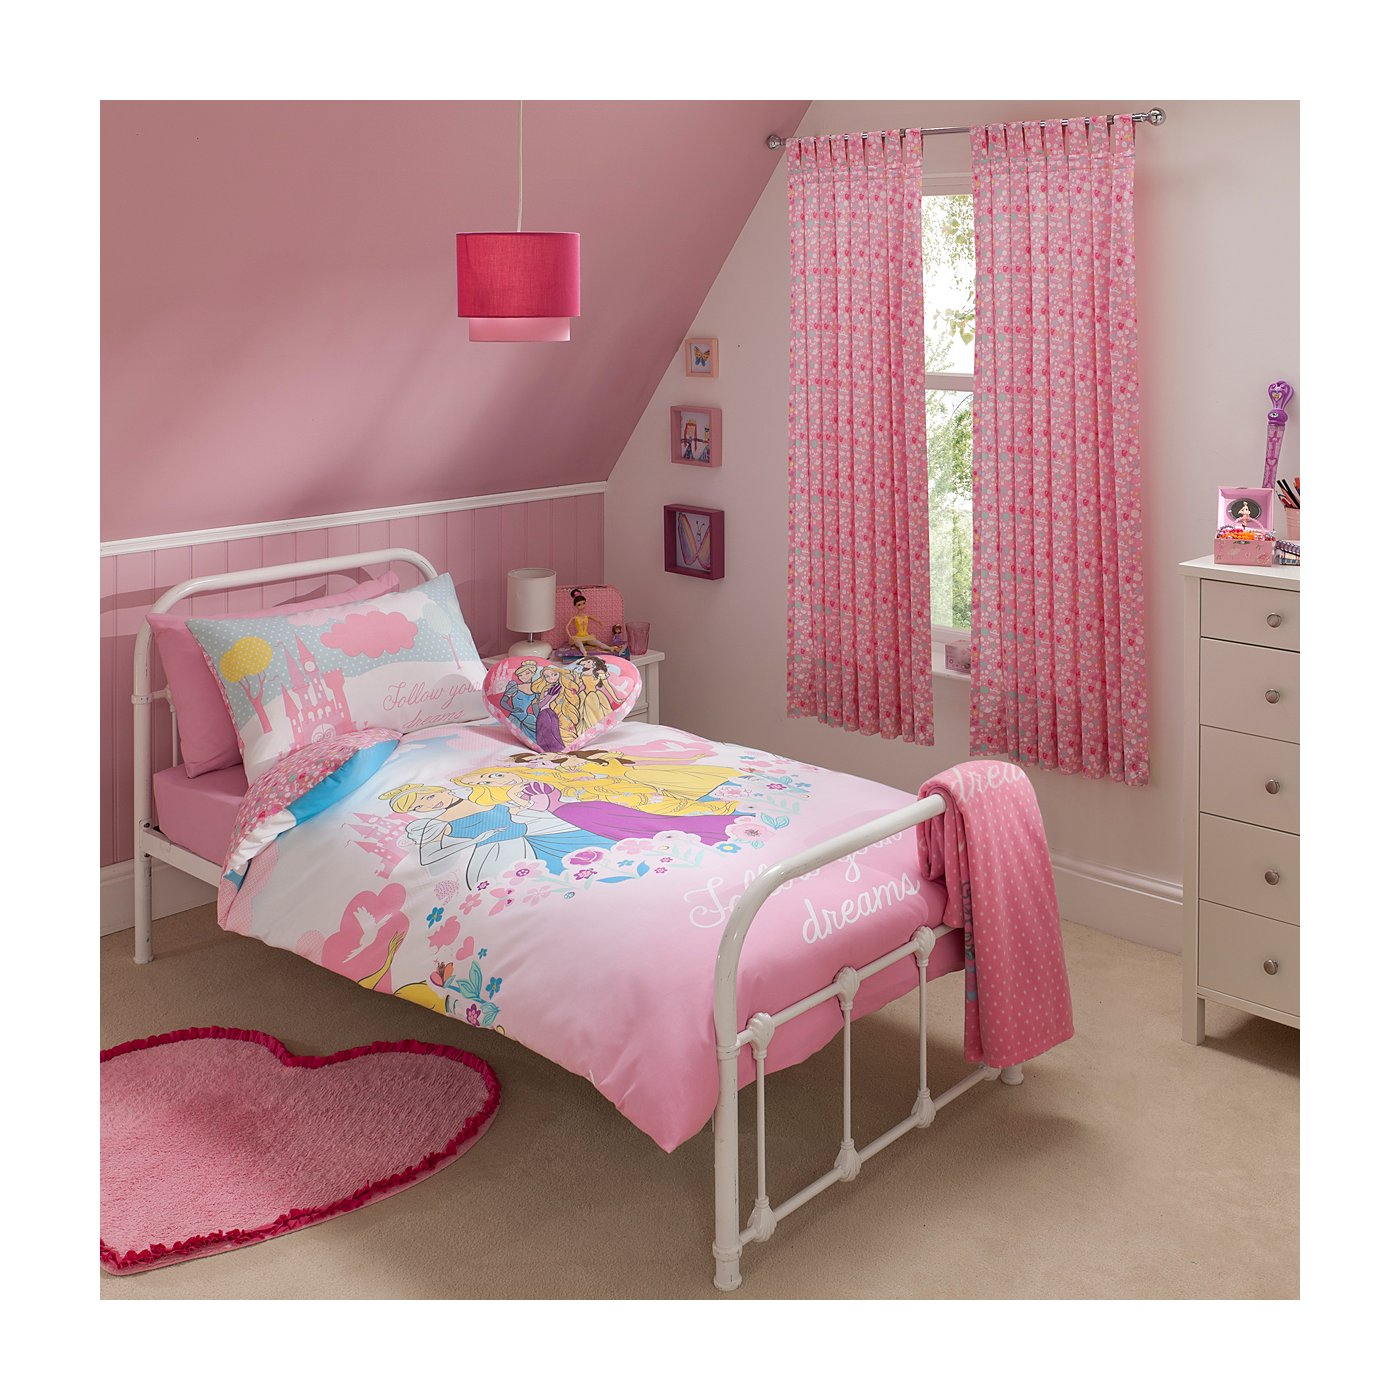 Disney Princess Bedroom Range | View All | George at ASDA